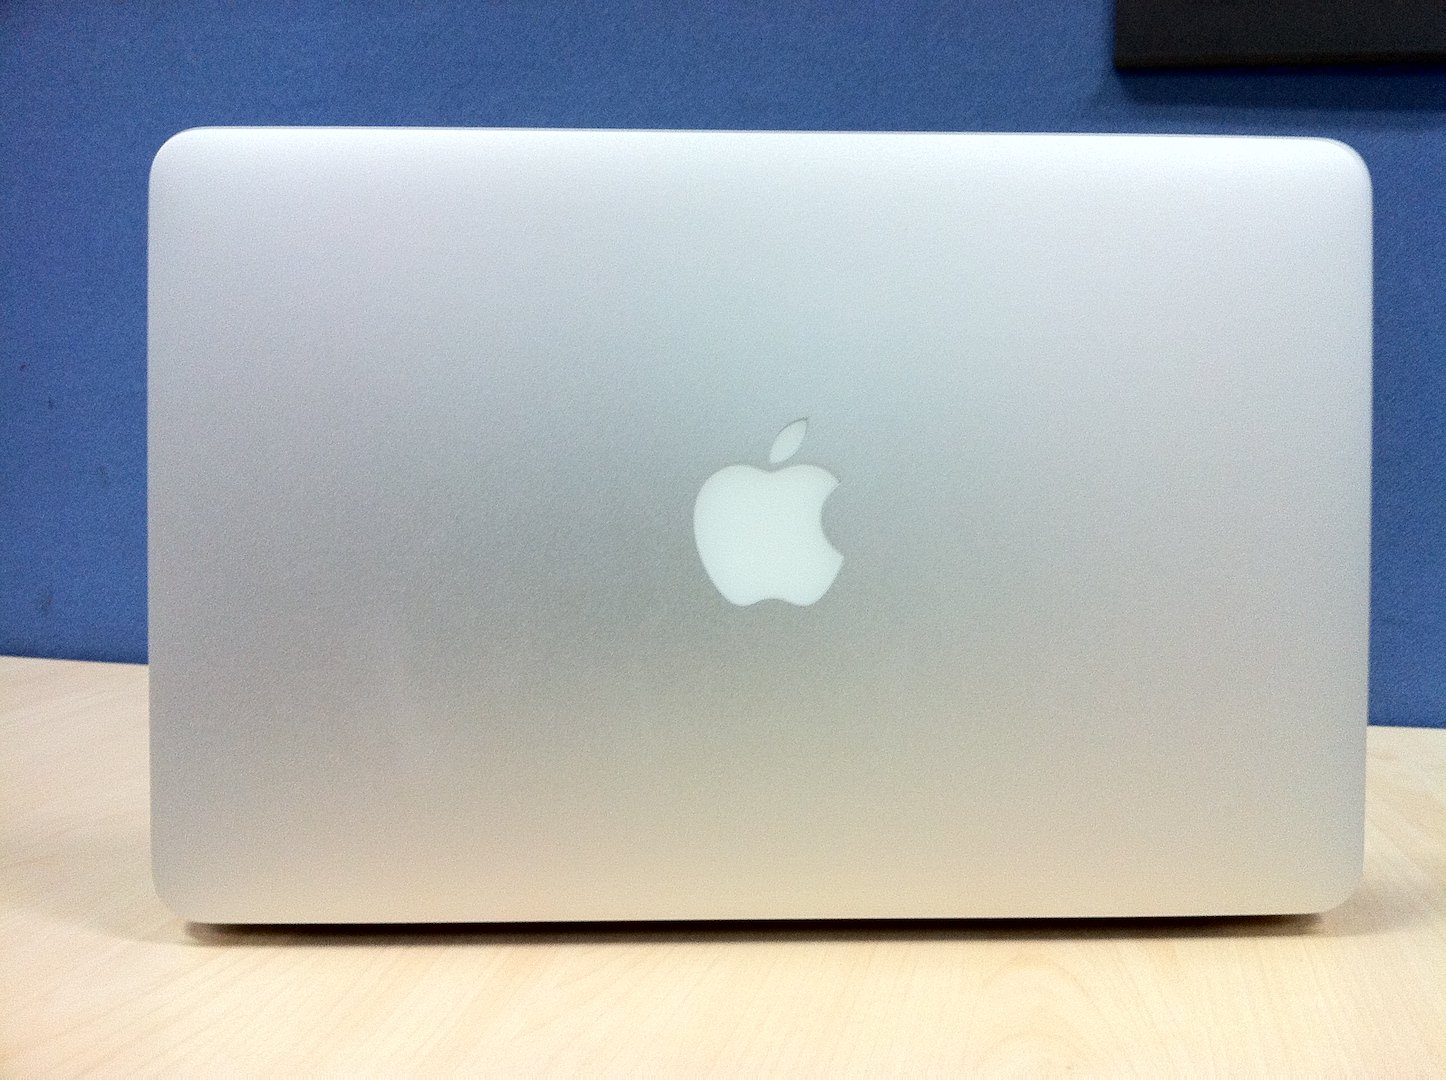 MacBook Air 11 inch model